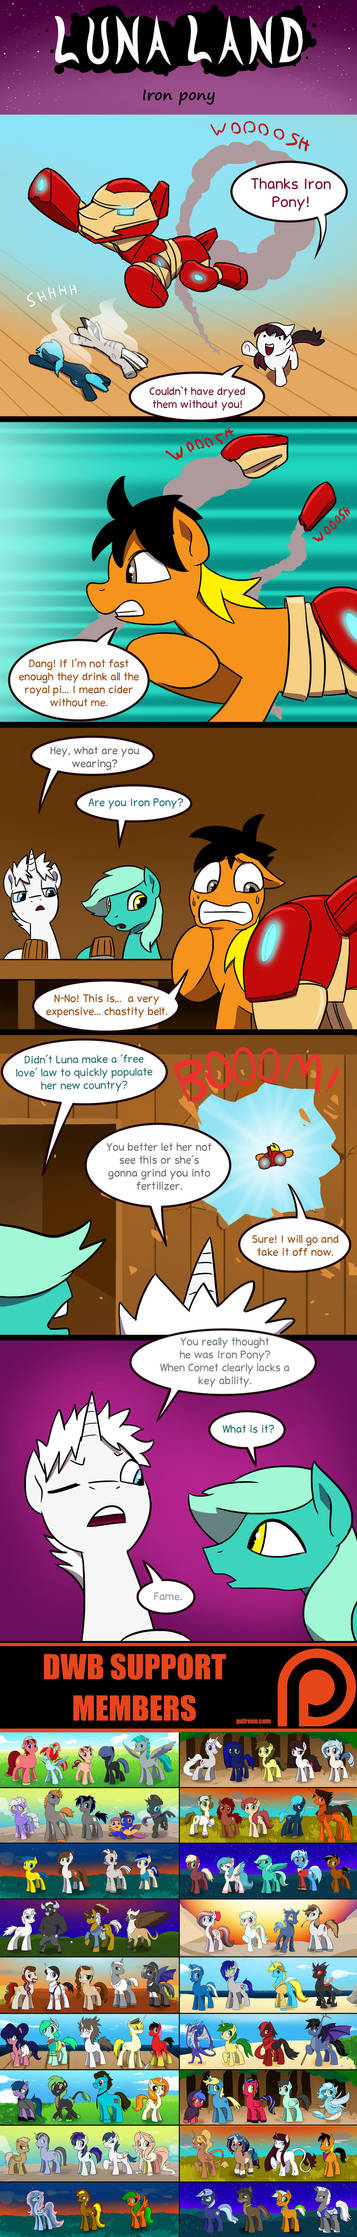 Tales of Luna Land 2 by doubleWbrothers